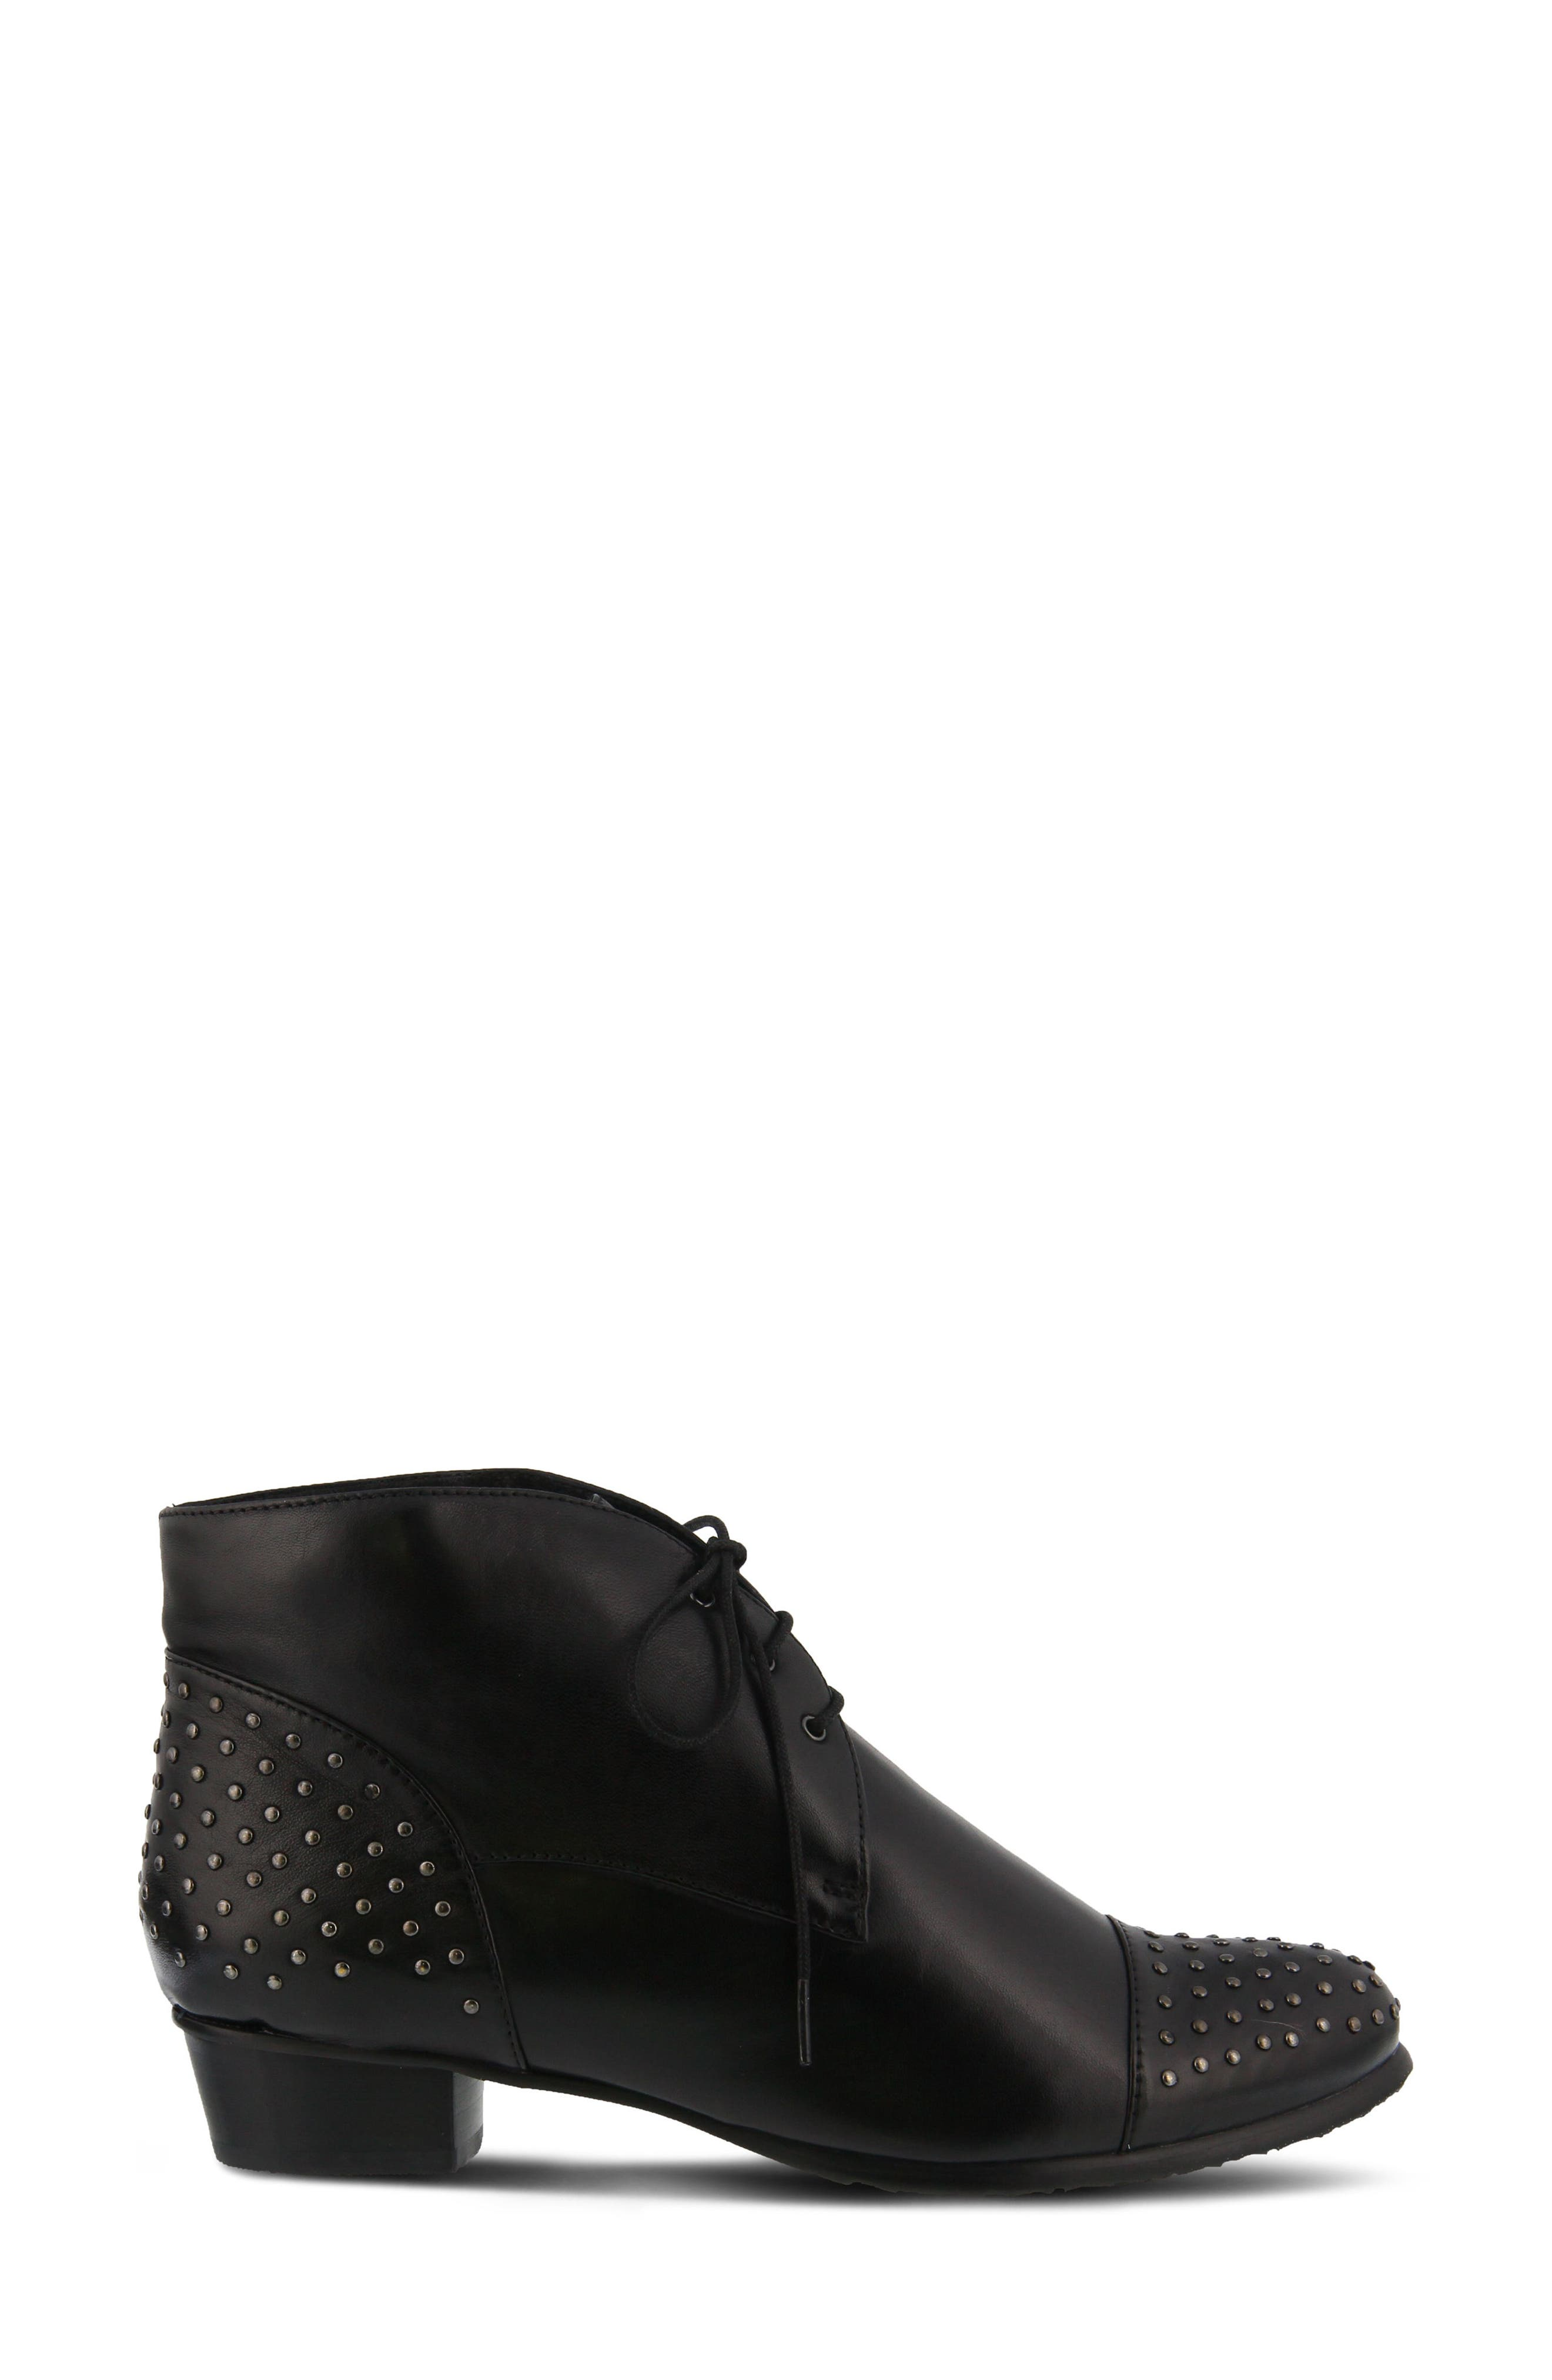 Alternate Image 3  - Spring Step Giovanna Studded Bootie (Women)